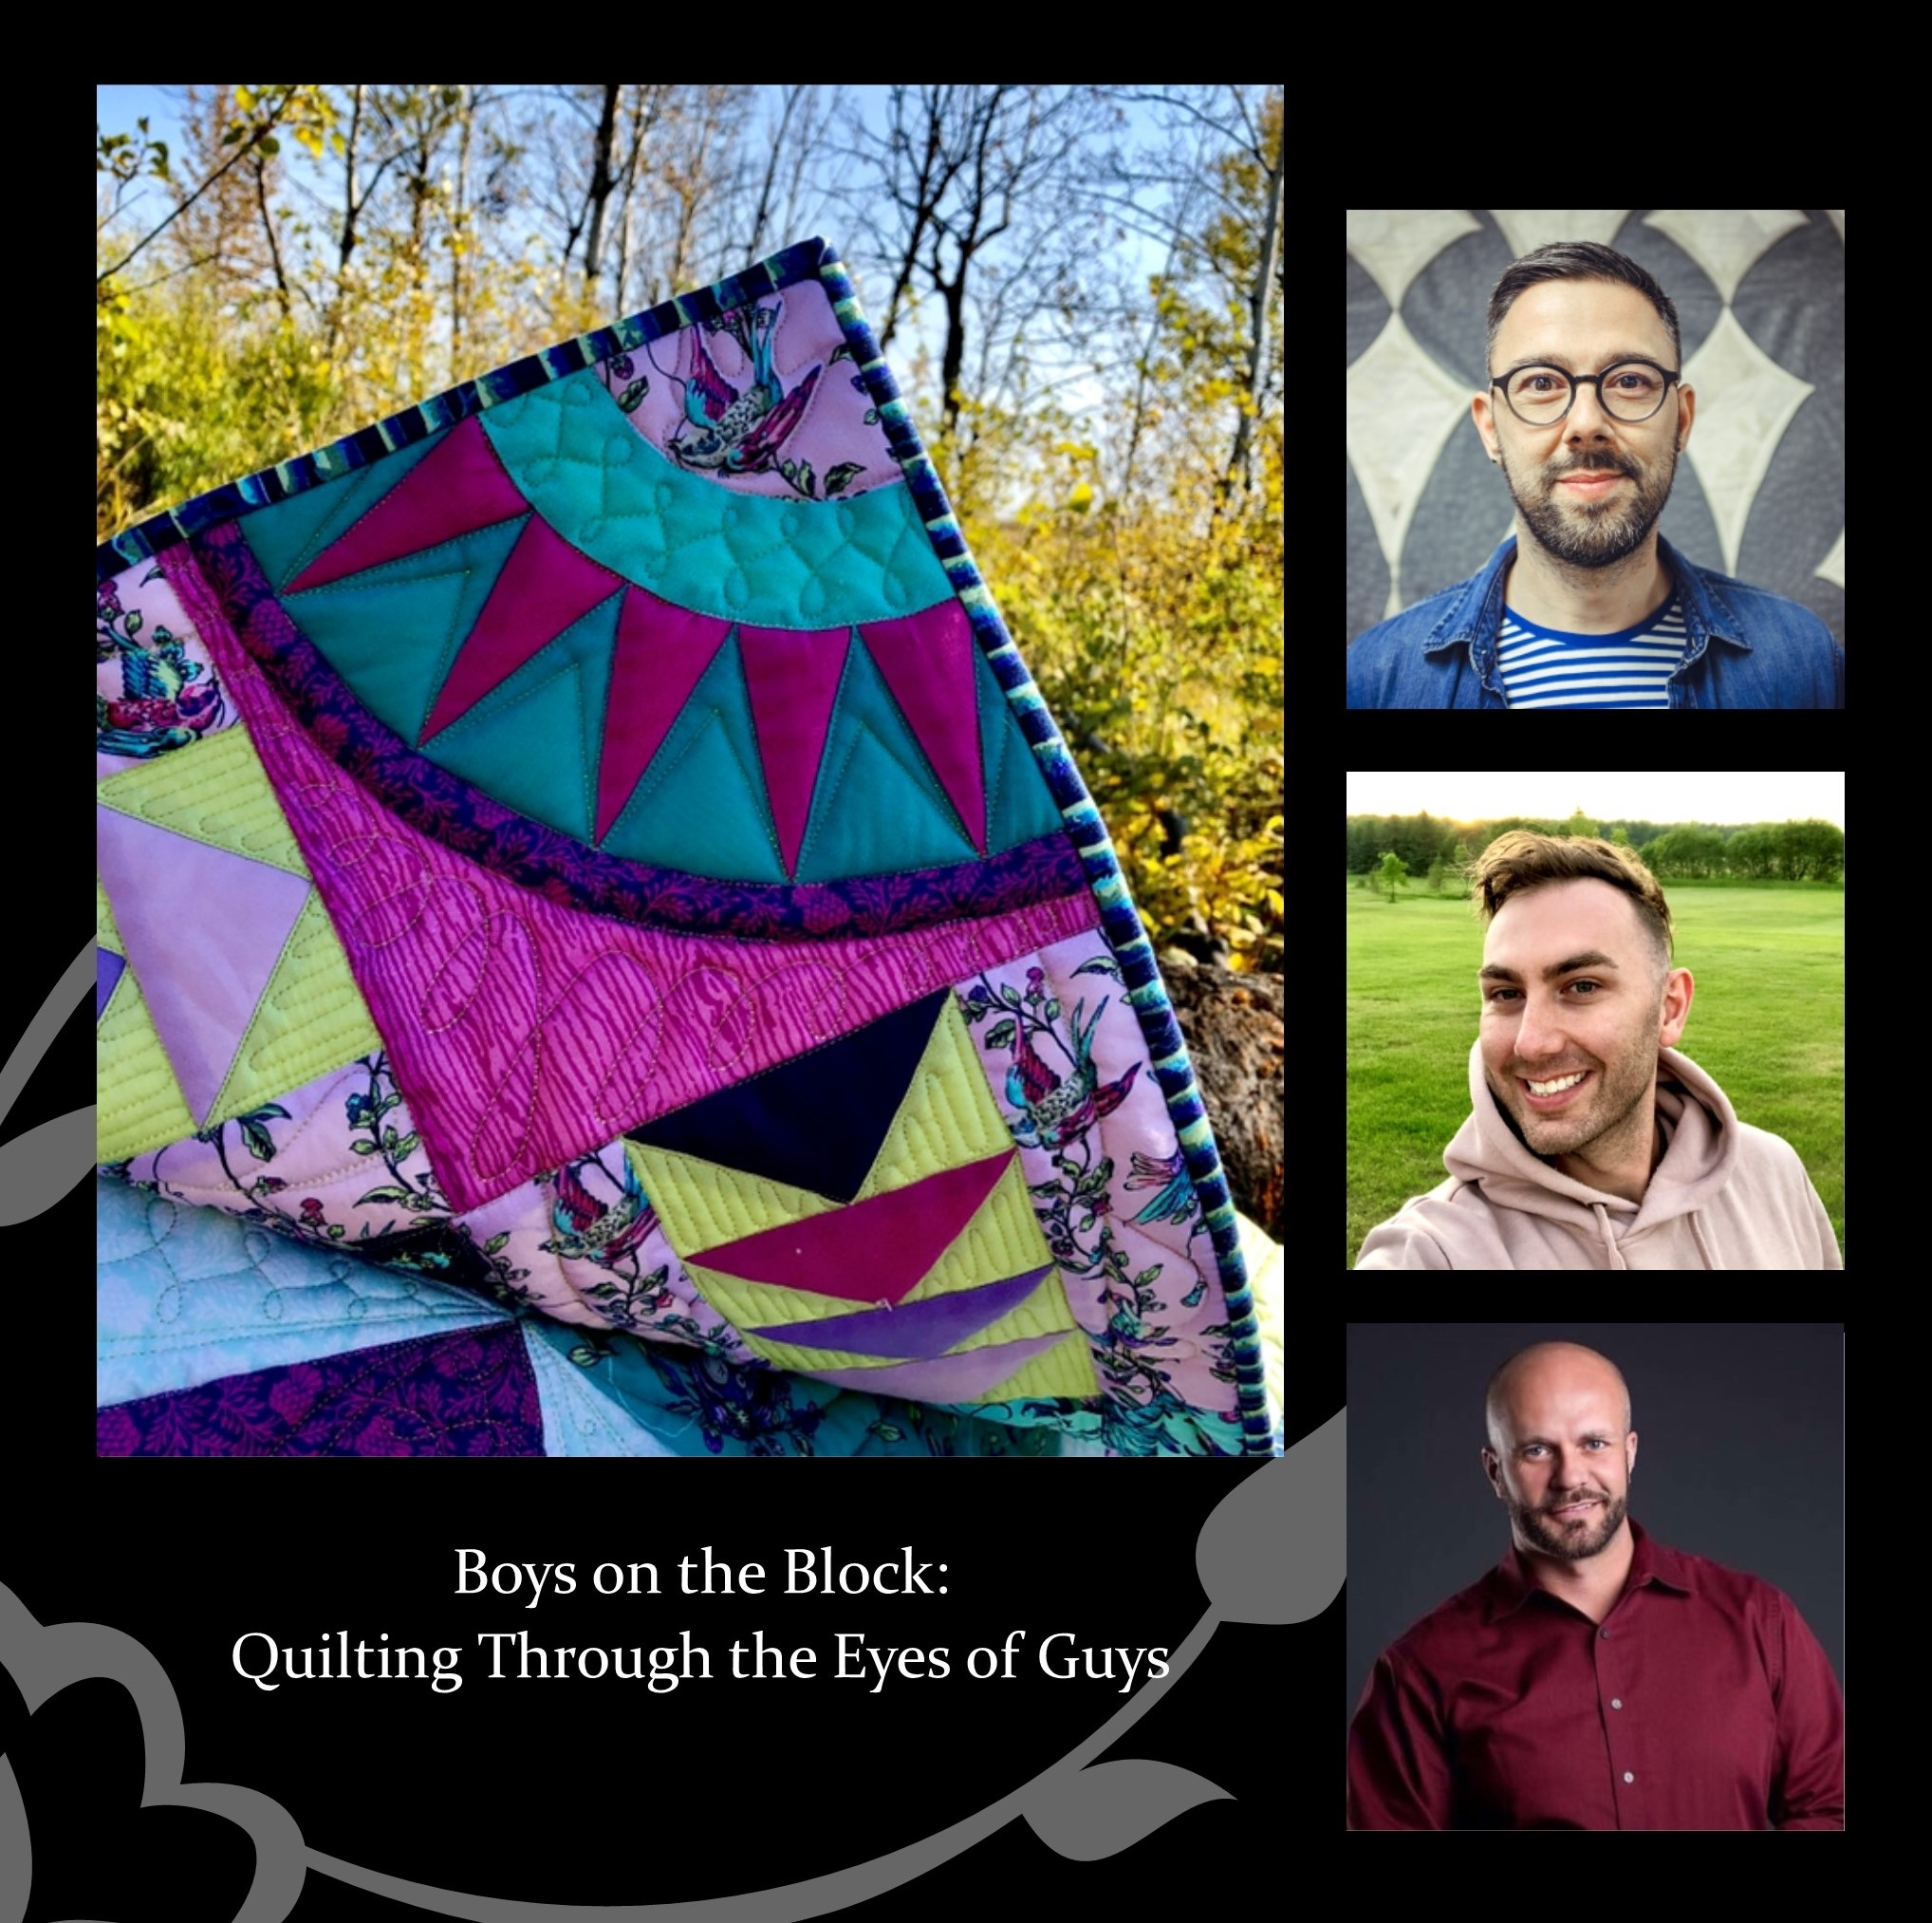 ECF.12,630pm - Boys on the Block: Quilting Through the Eyes of Guys - EVENING LECTURE